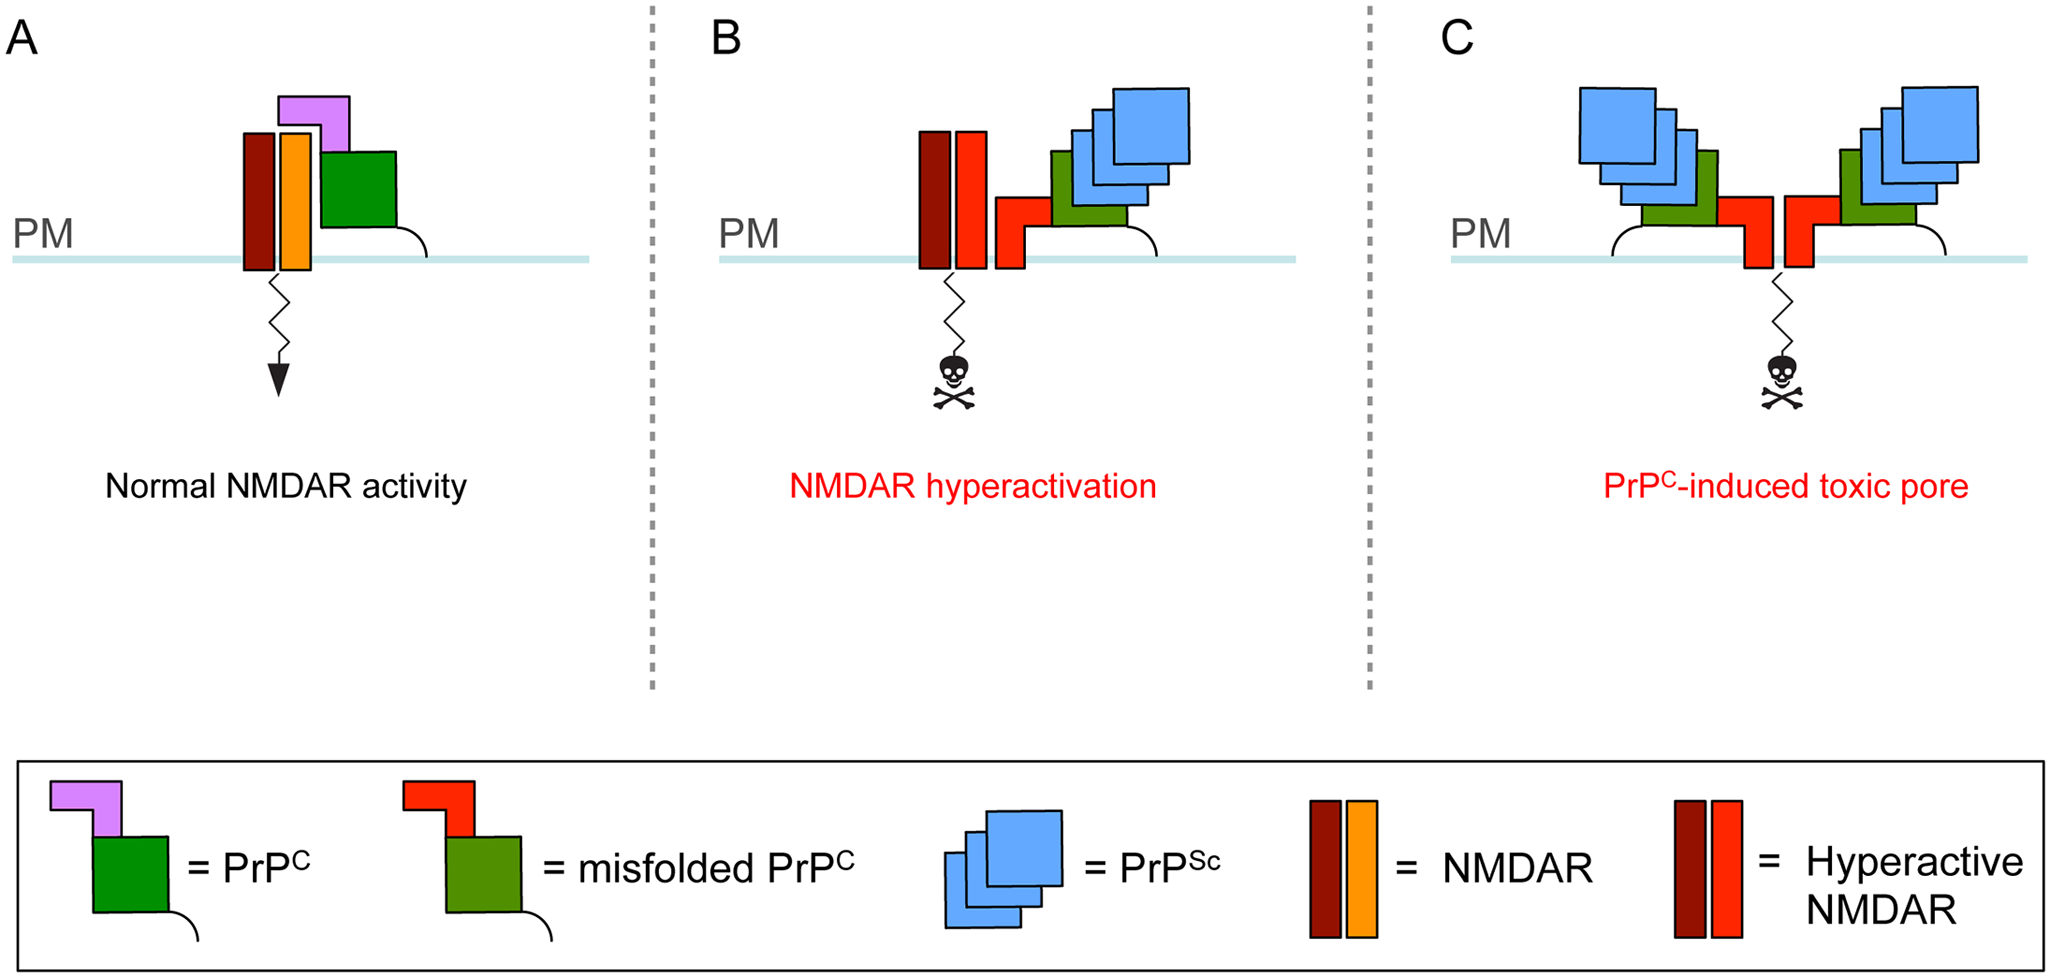 Theoretical model for how cell surface PrP<sup>C</sup> misfolding could result in neurotoxicity.